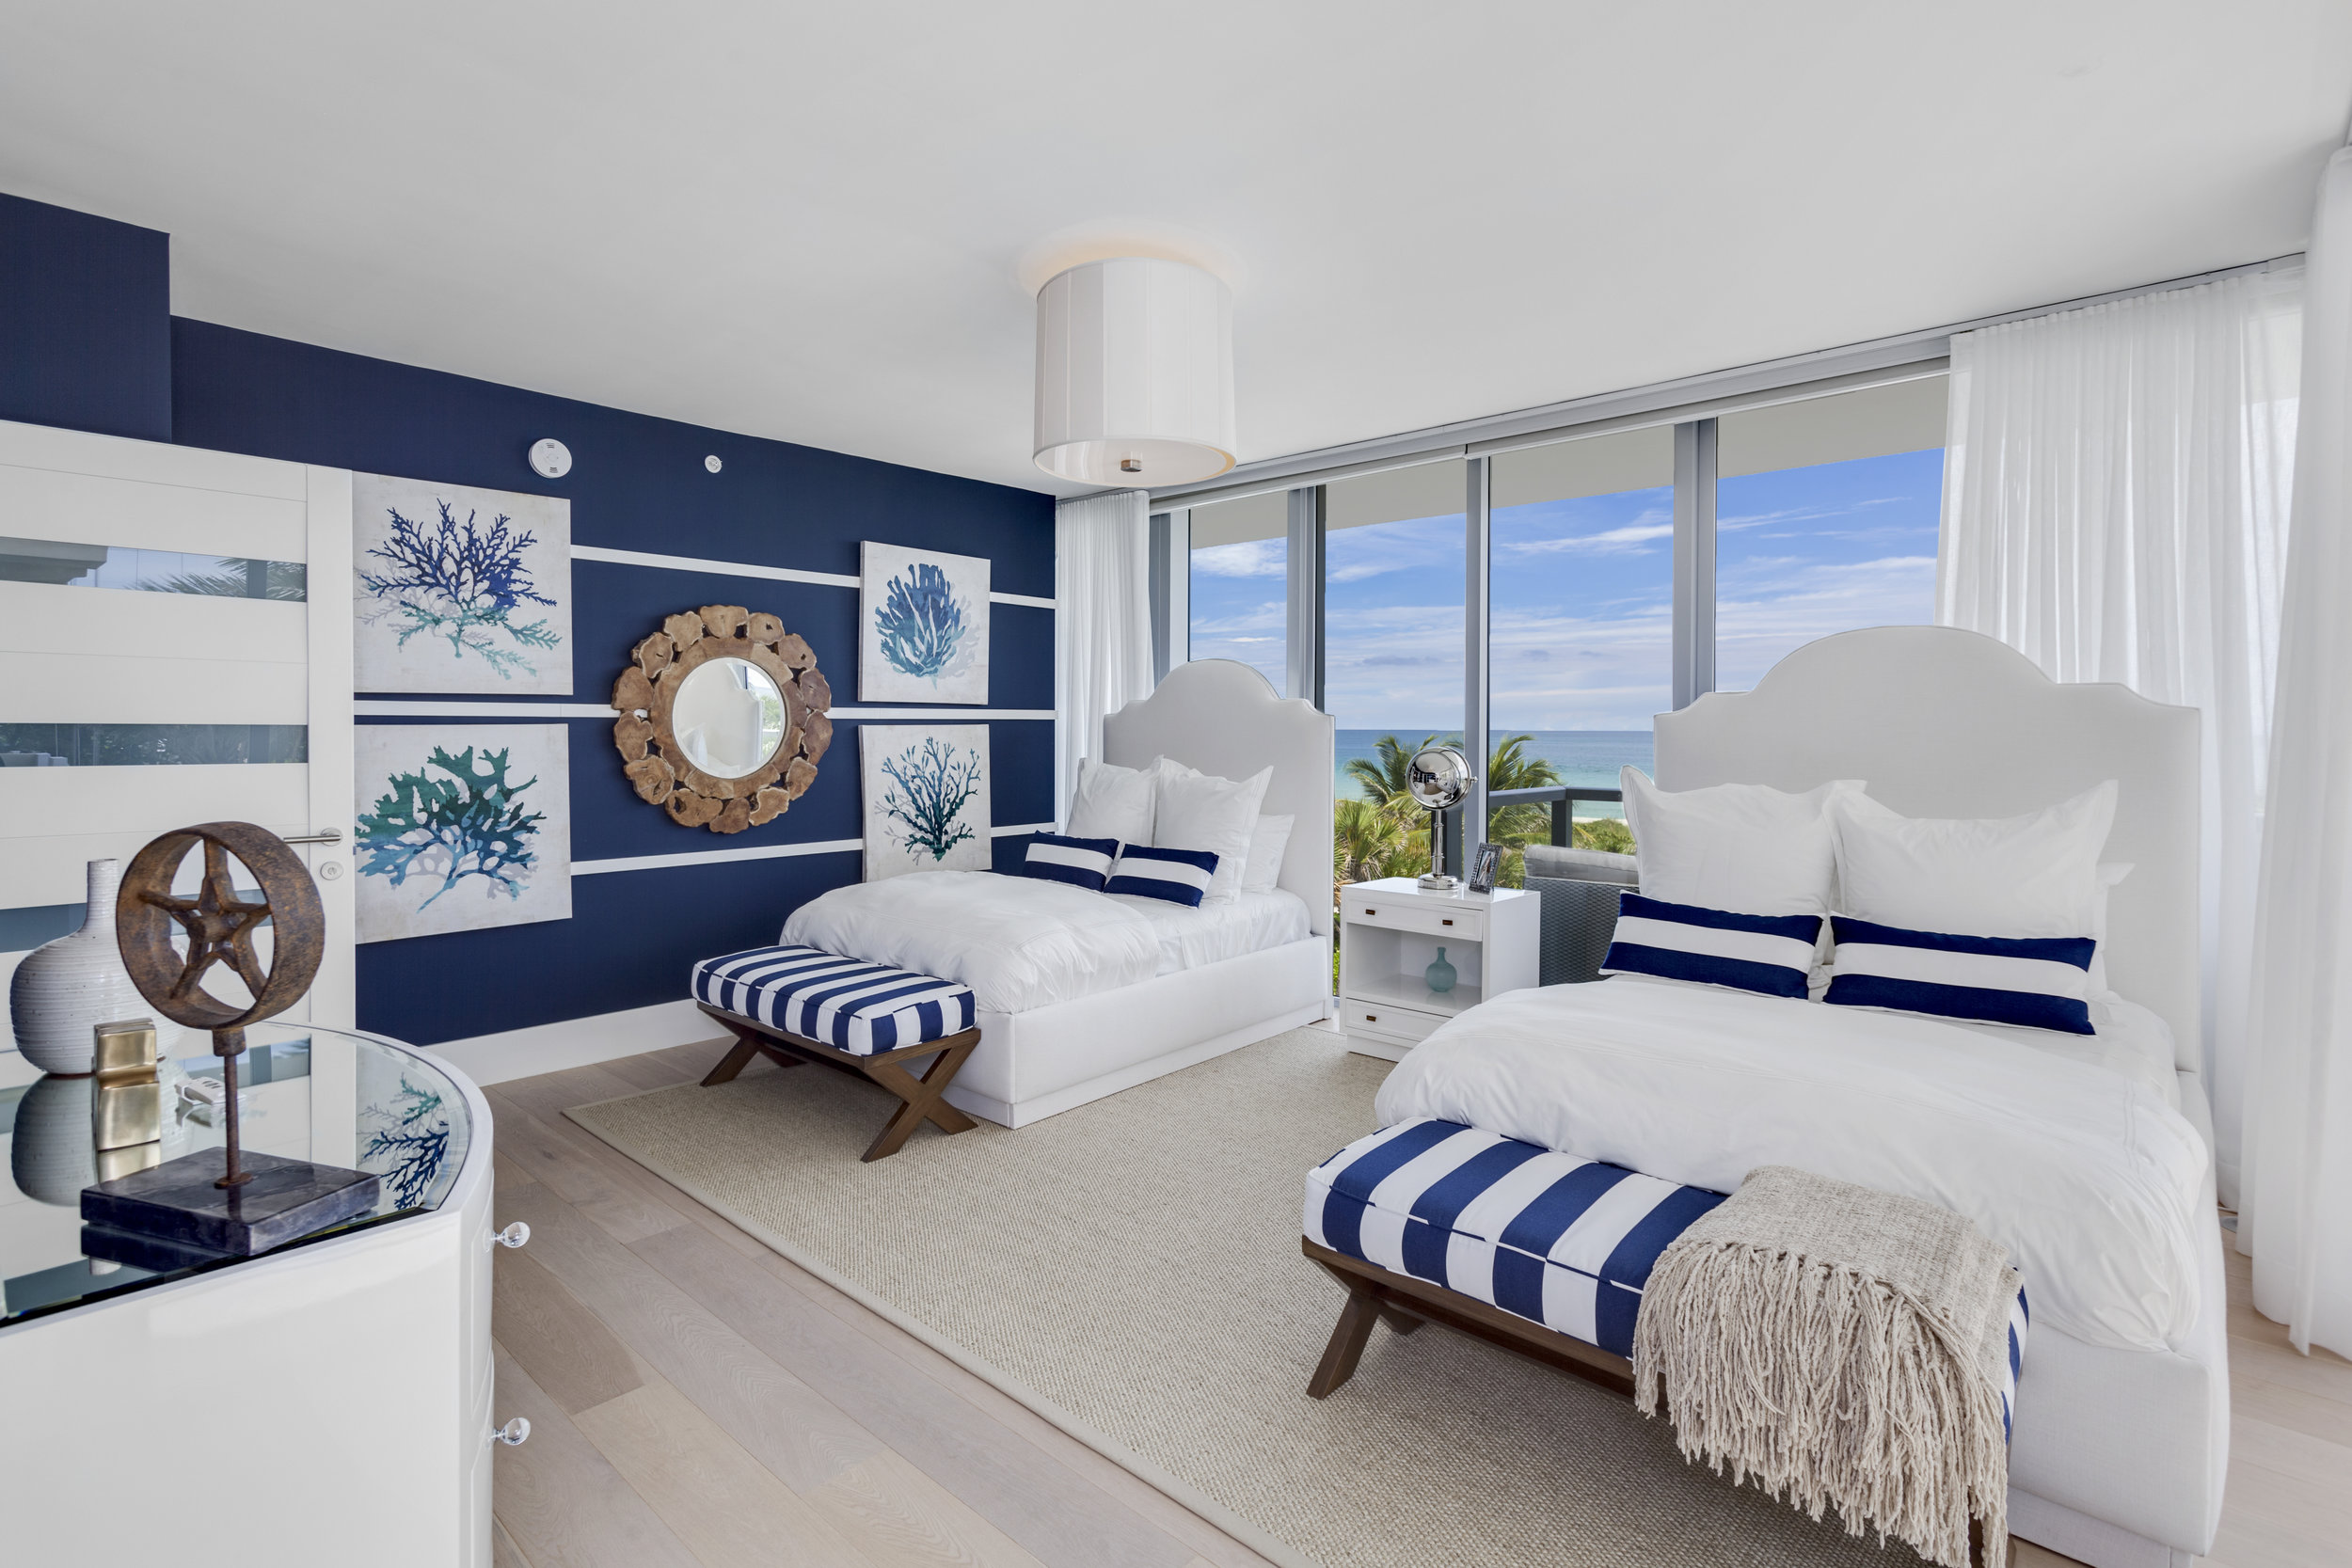 Tour the Beachfront Townhouse in Surfside that Just Sold for $5.7 Million